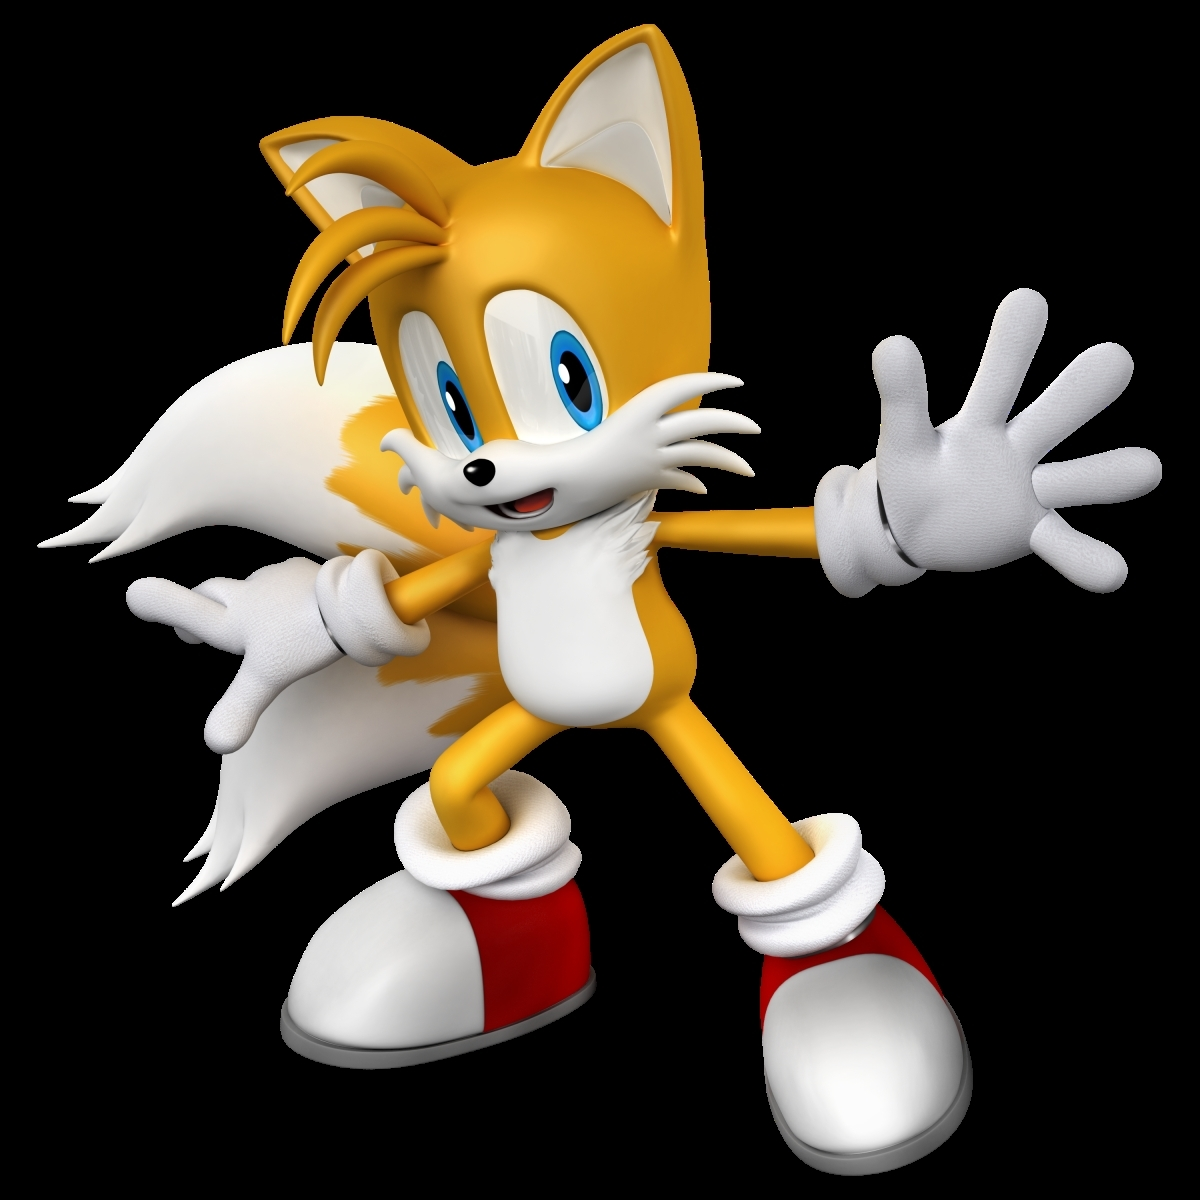 Miles Tails Prower: Game Dissector: May 2011